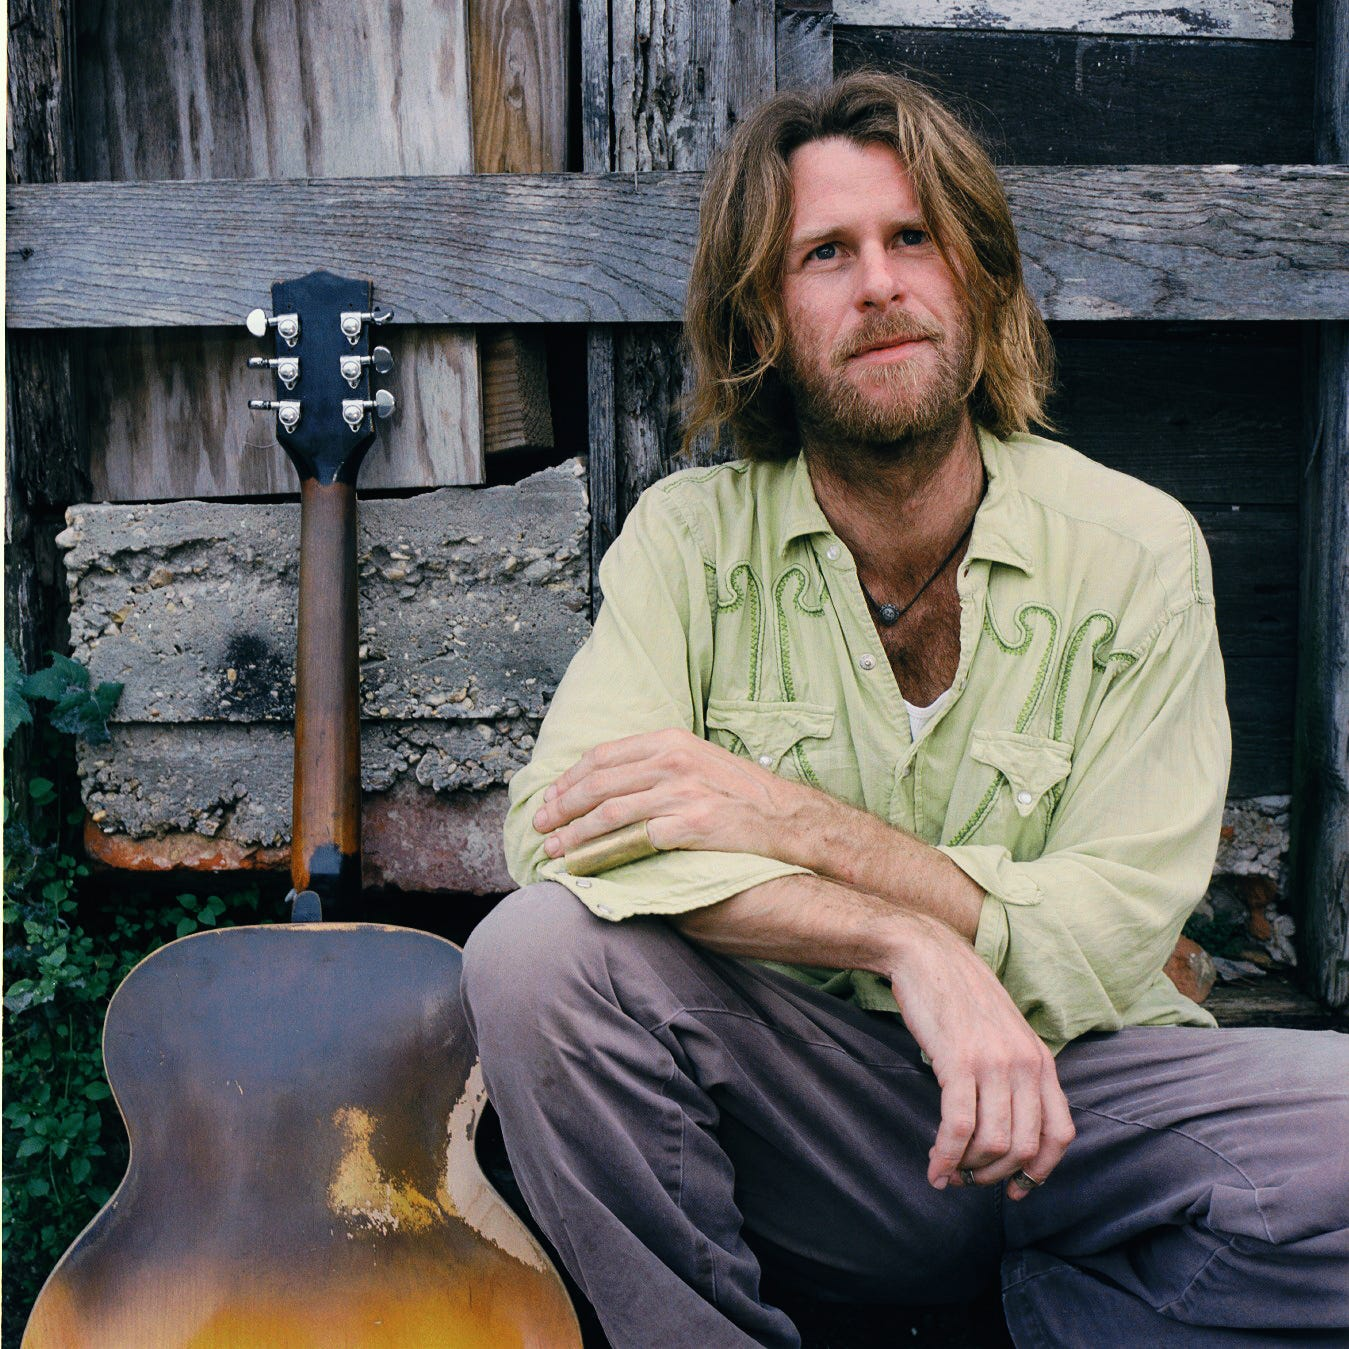 Get the Led Out fires up Zep fans; rootsy Grayson Capps cools things down | Music Roundup